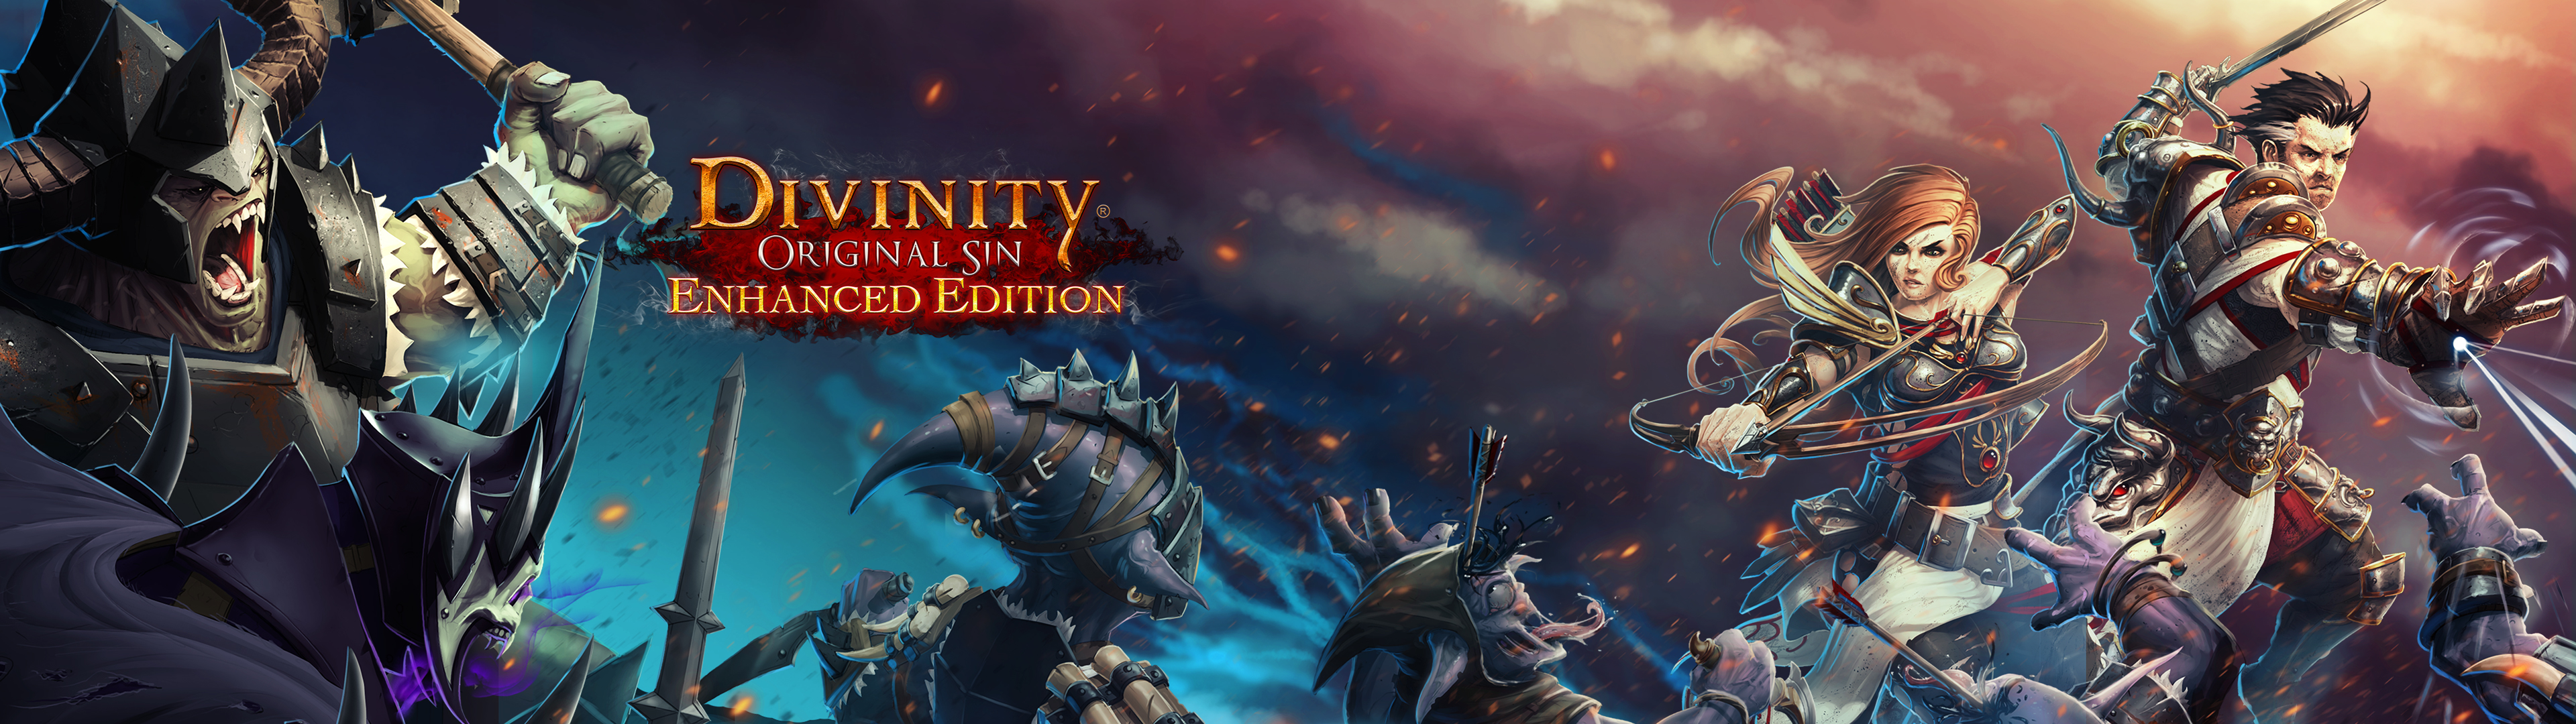 Divinity Original Sin 2 Wallpaper 1920x1080 Posted By Christopher Anderson